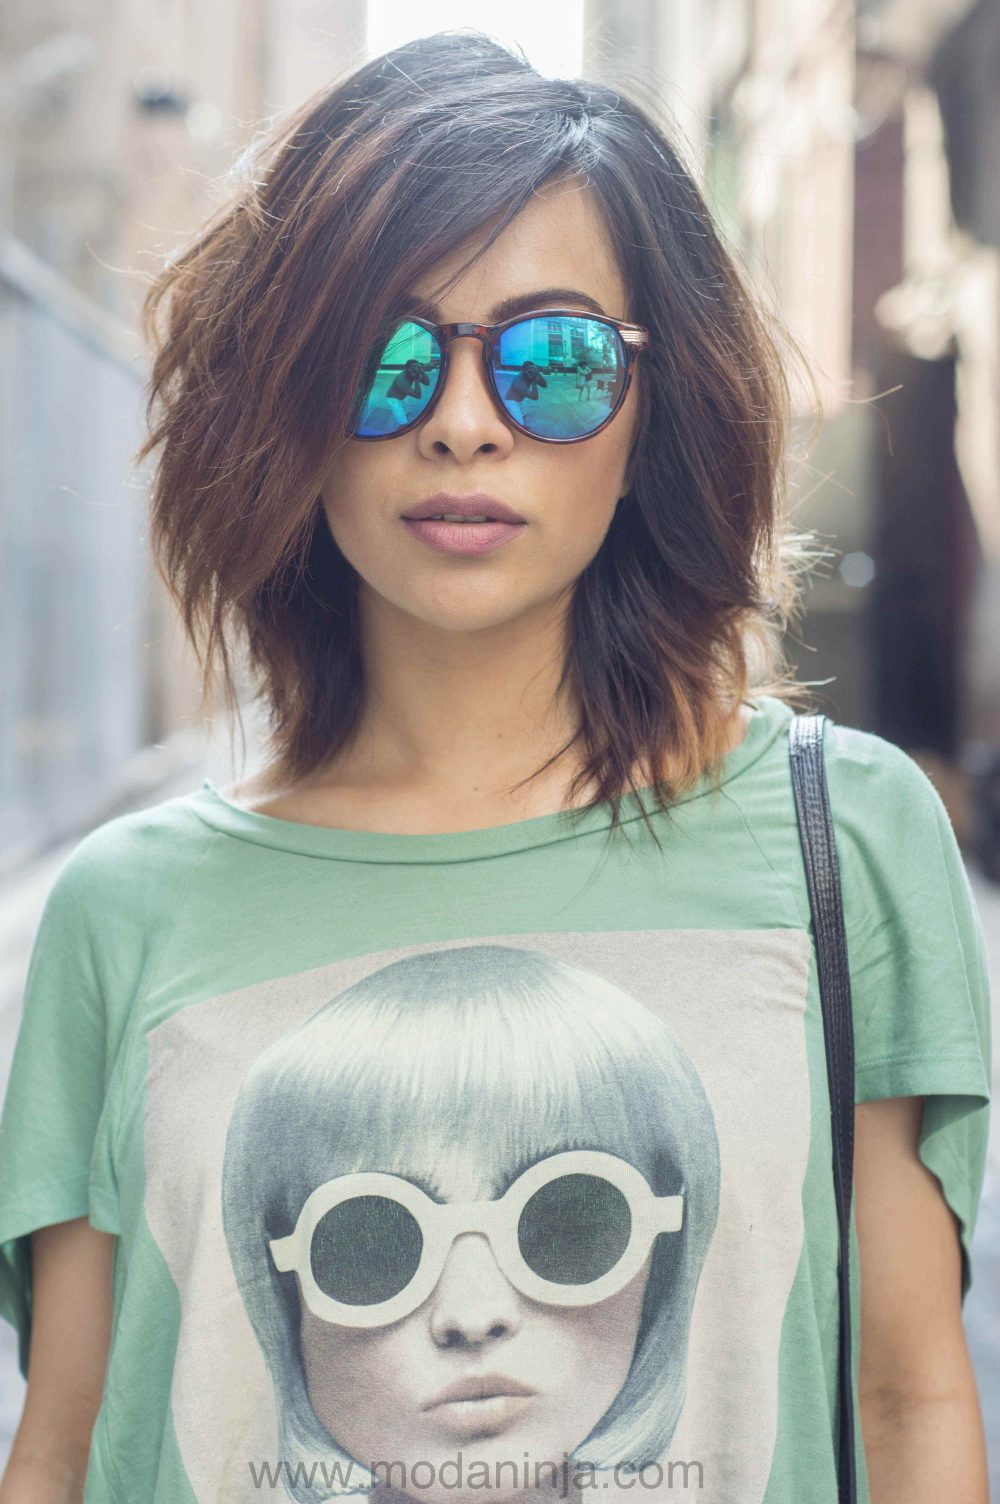 The Girl in Sunnies